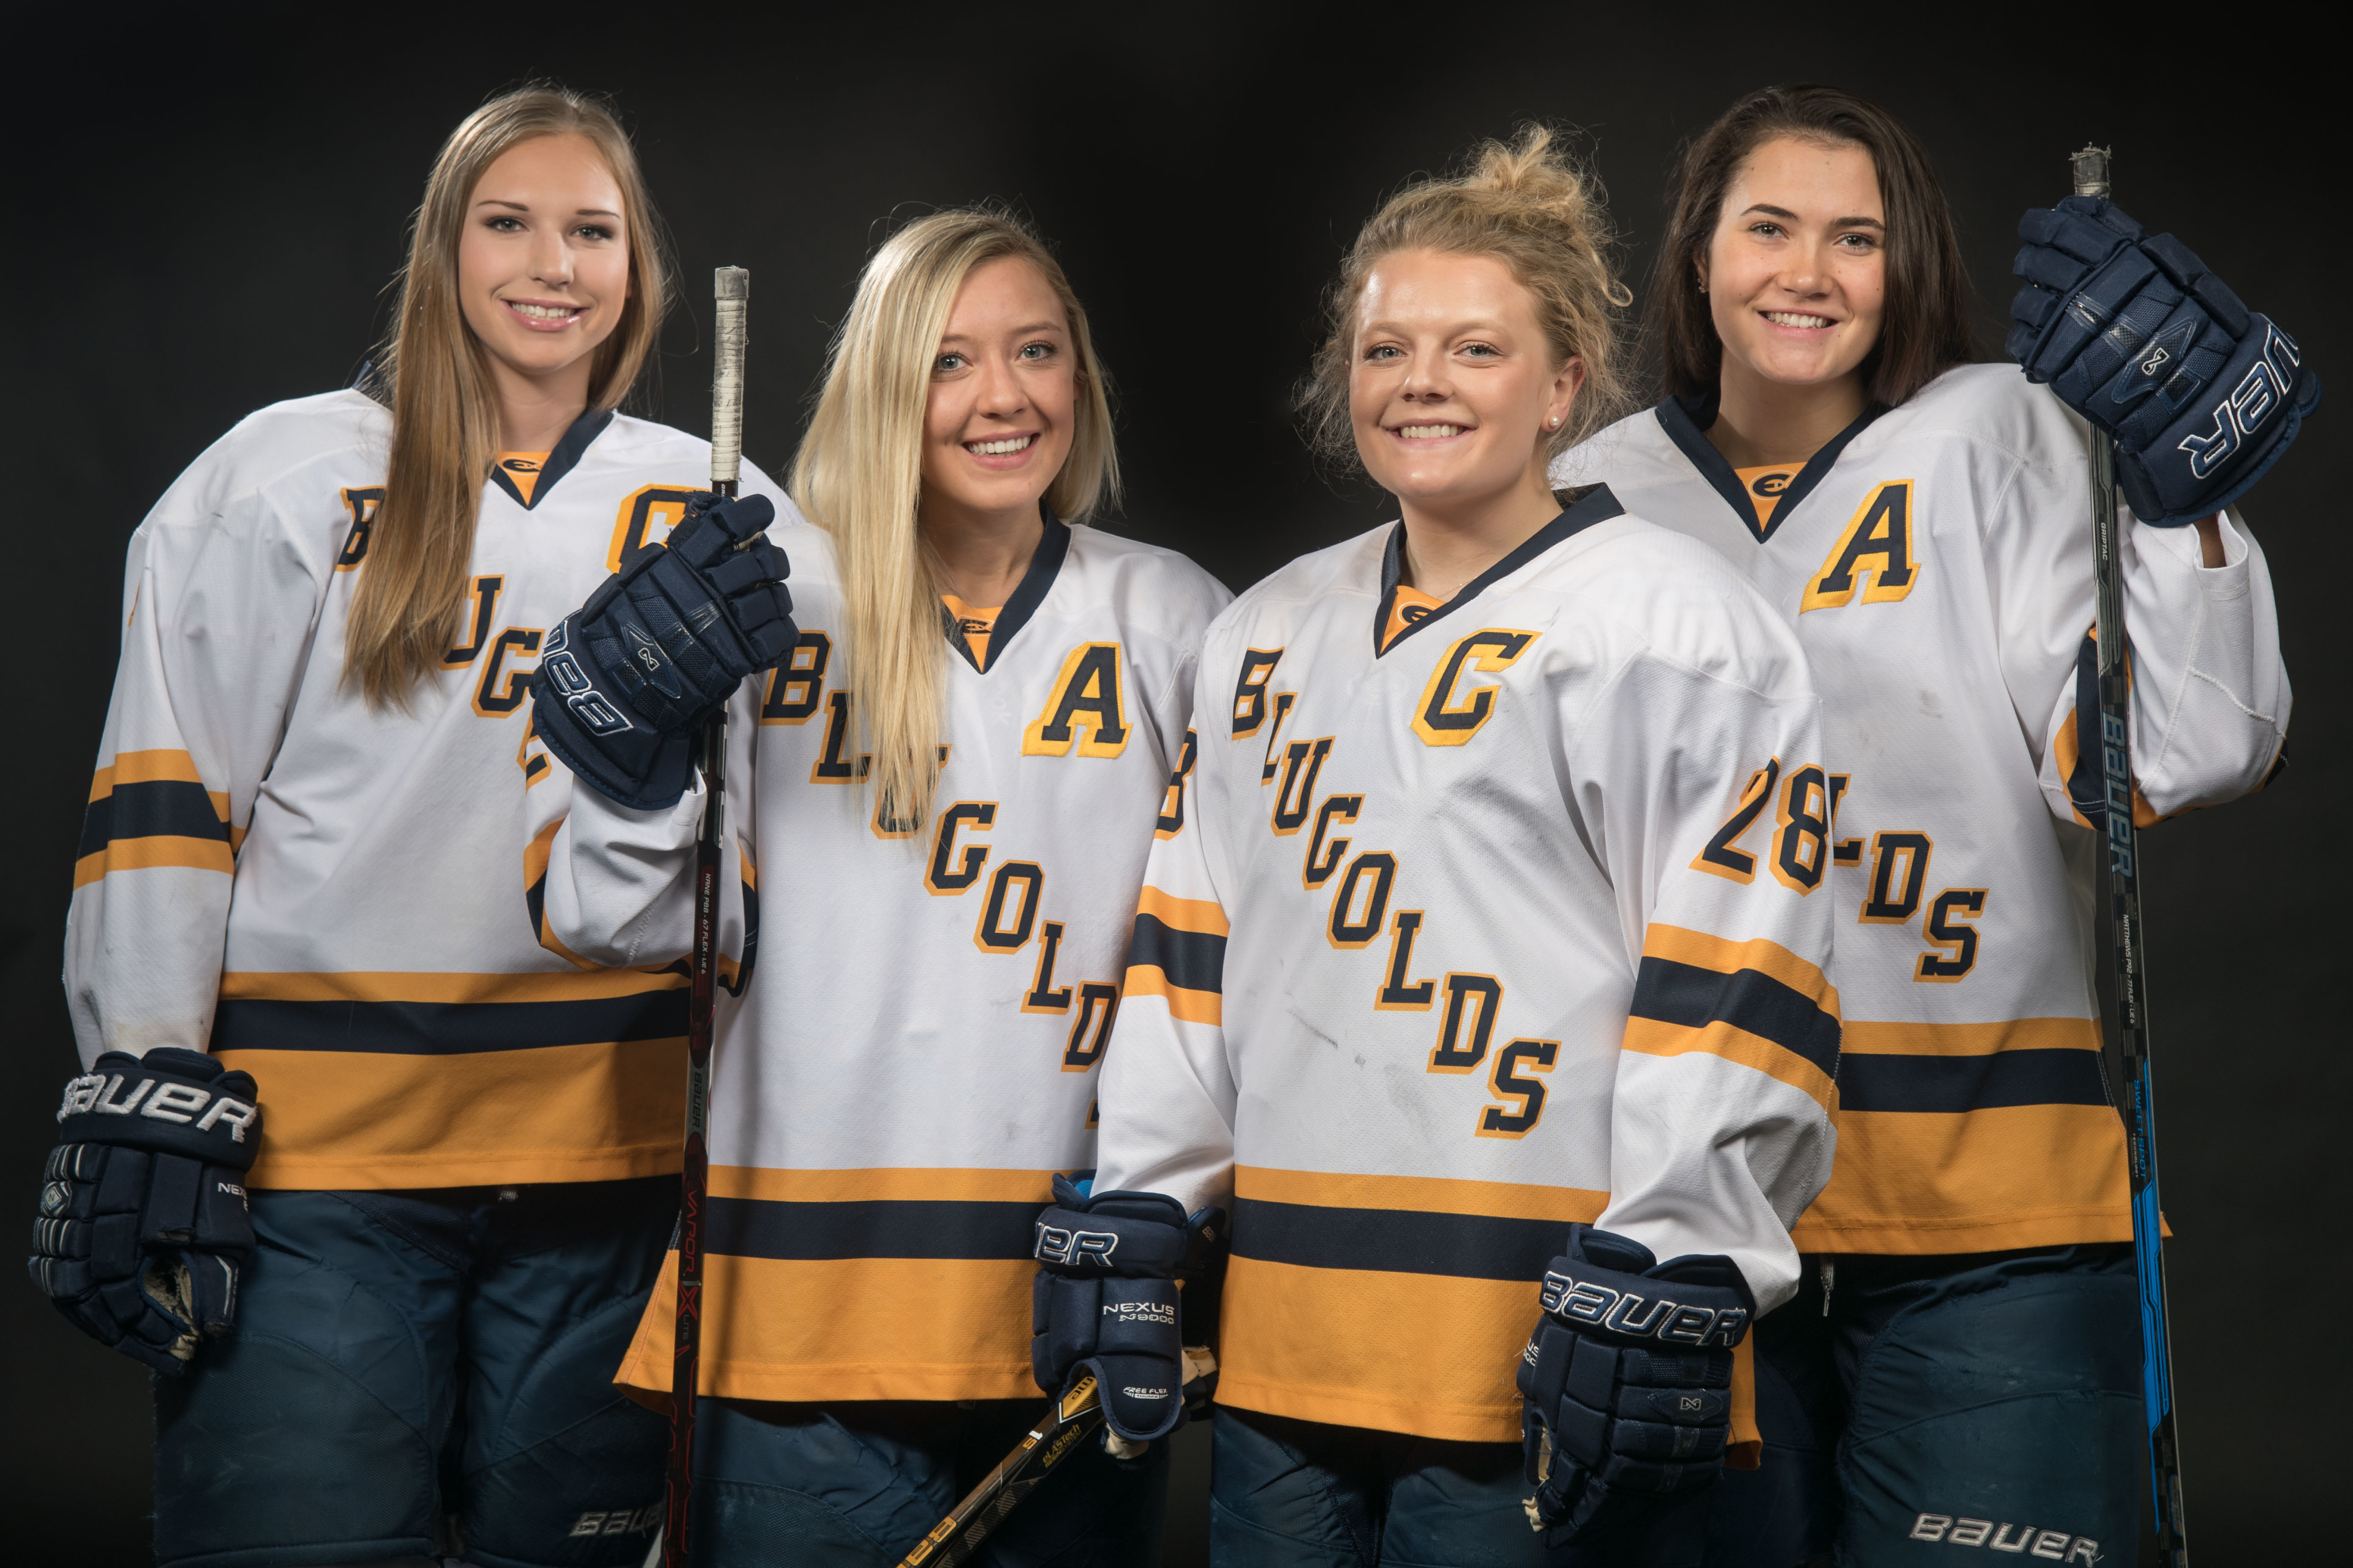 buy online cfbe0 c5b87 A new opponent: Blugold women's hockey takes on cancer in ...